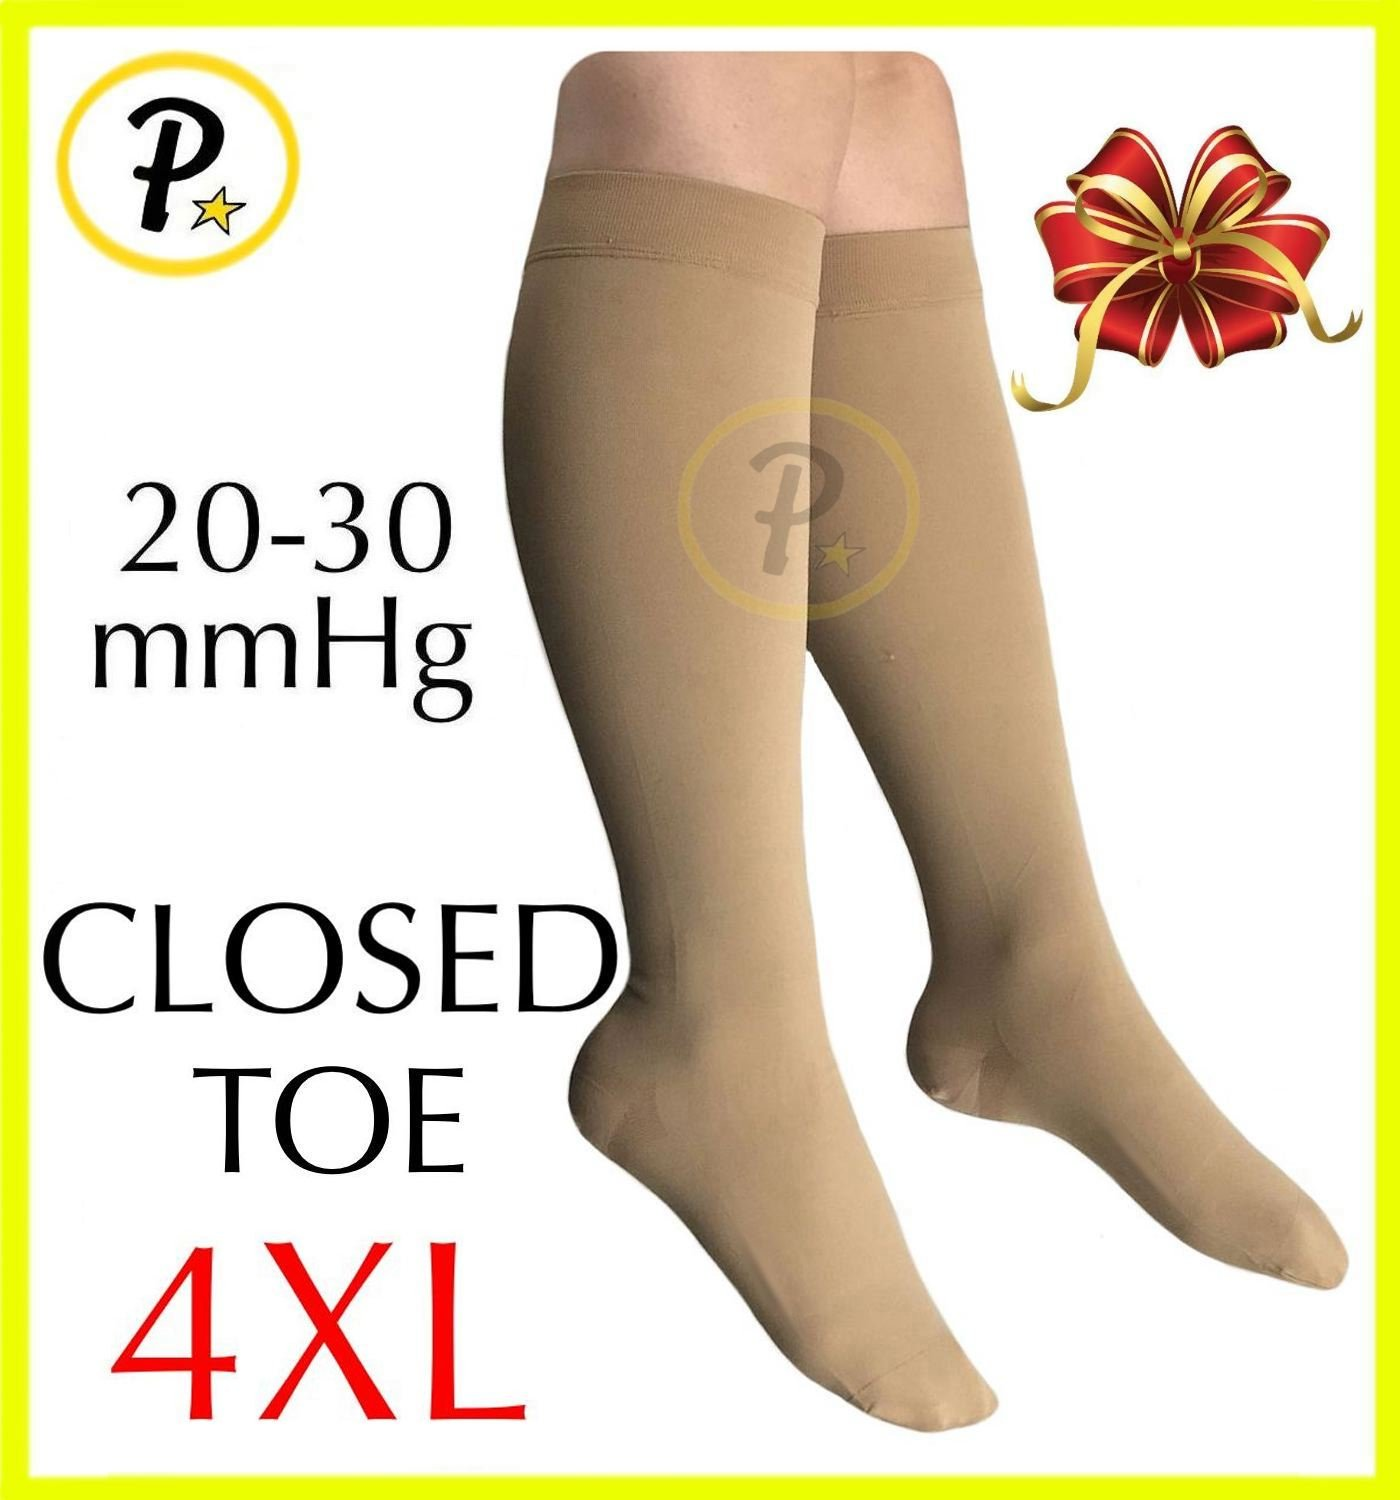 Presadee Closed Toe (BIG & TALL SUPER SIZE) Traditional 20-30 mmHg Compression Grade Swelling Veins Ankle Calf Leg Sock Support (4XL, Beige)